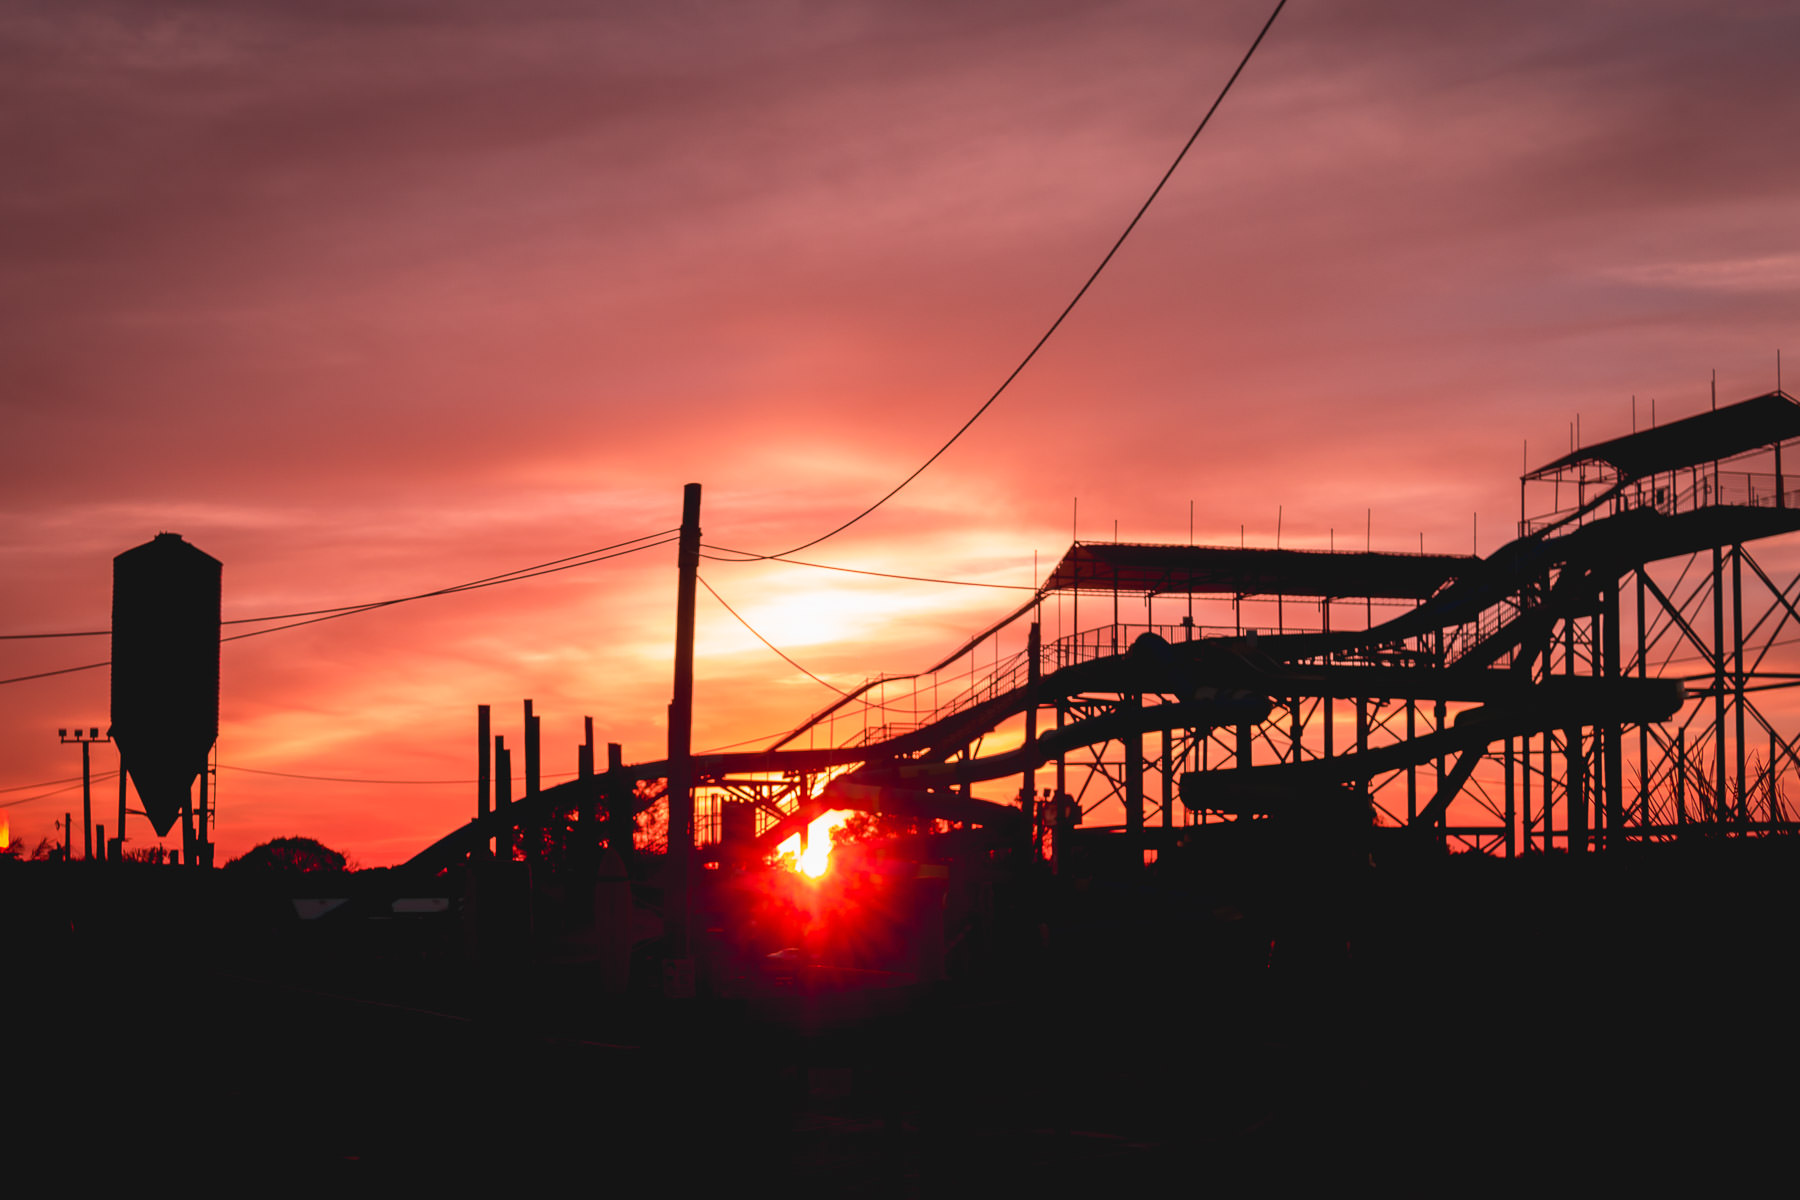 The sun sets on water slides at Pirates' Cove water park in Burleson, Texas.